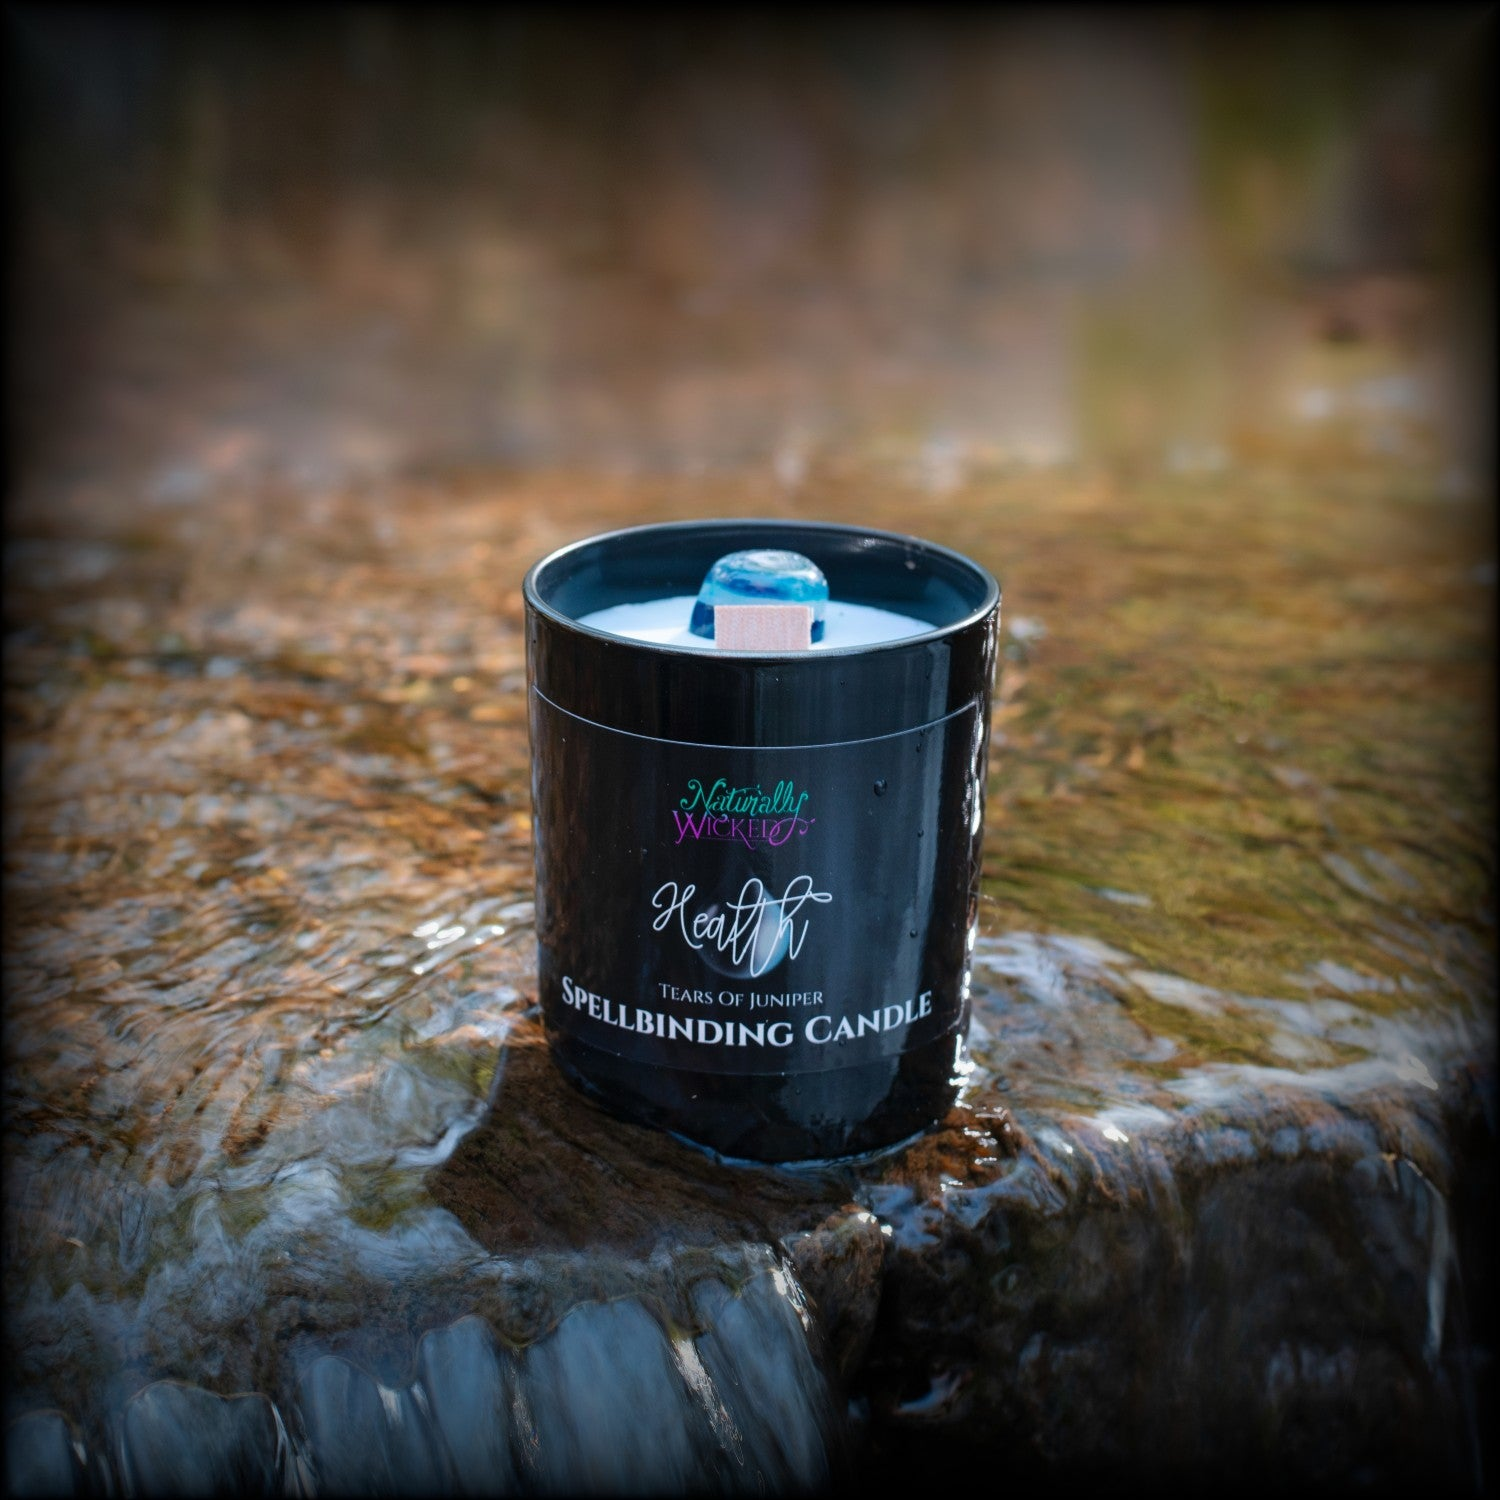 Naturally Wicked Spellbinding Health Candle With Bright Blue Crystal Resides In Clear Flowing Water